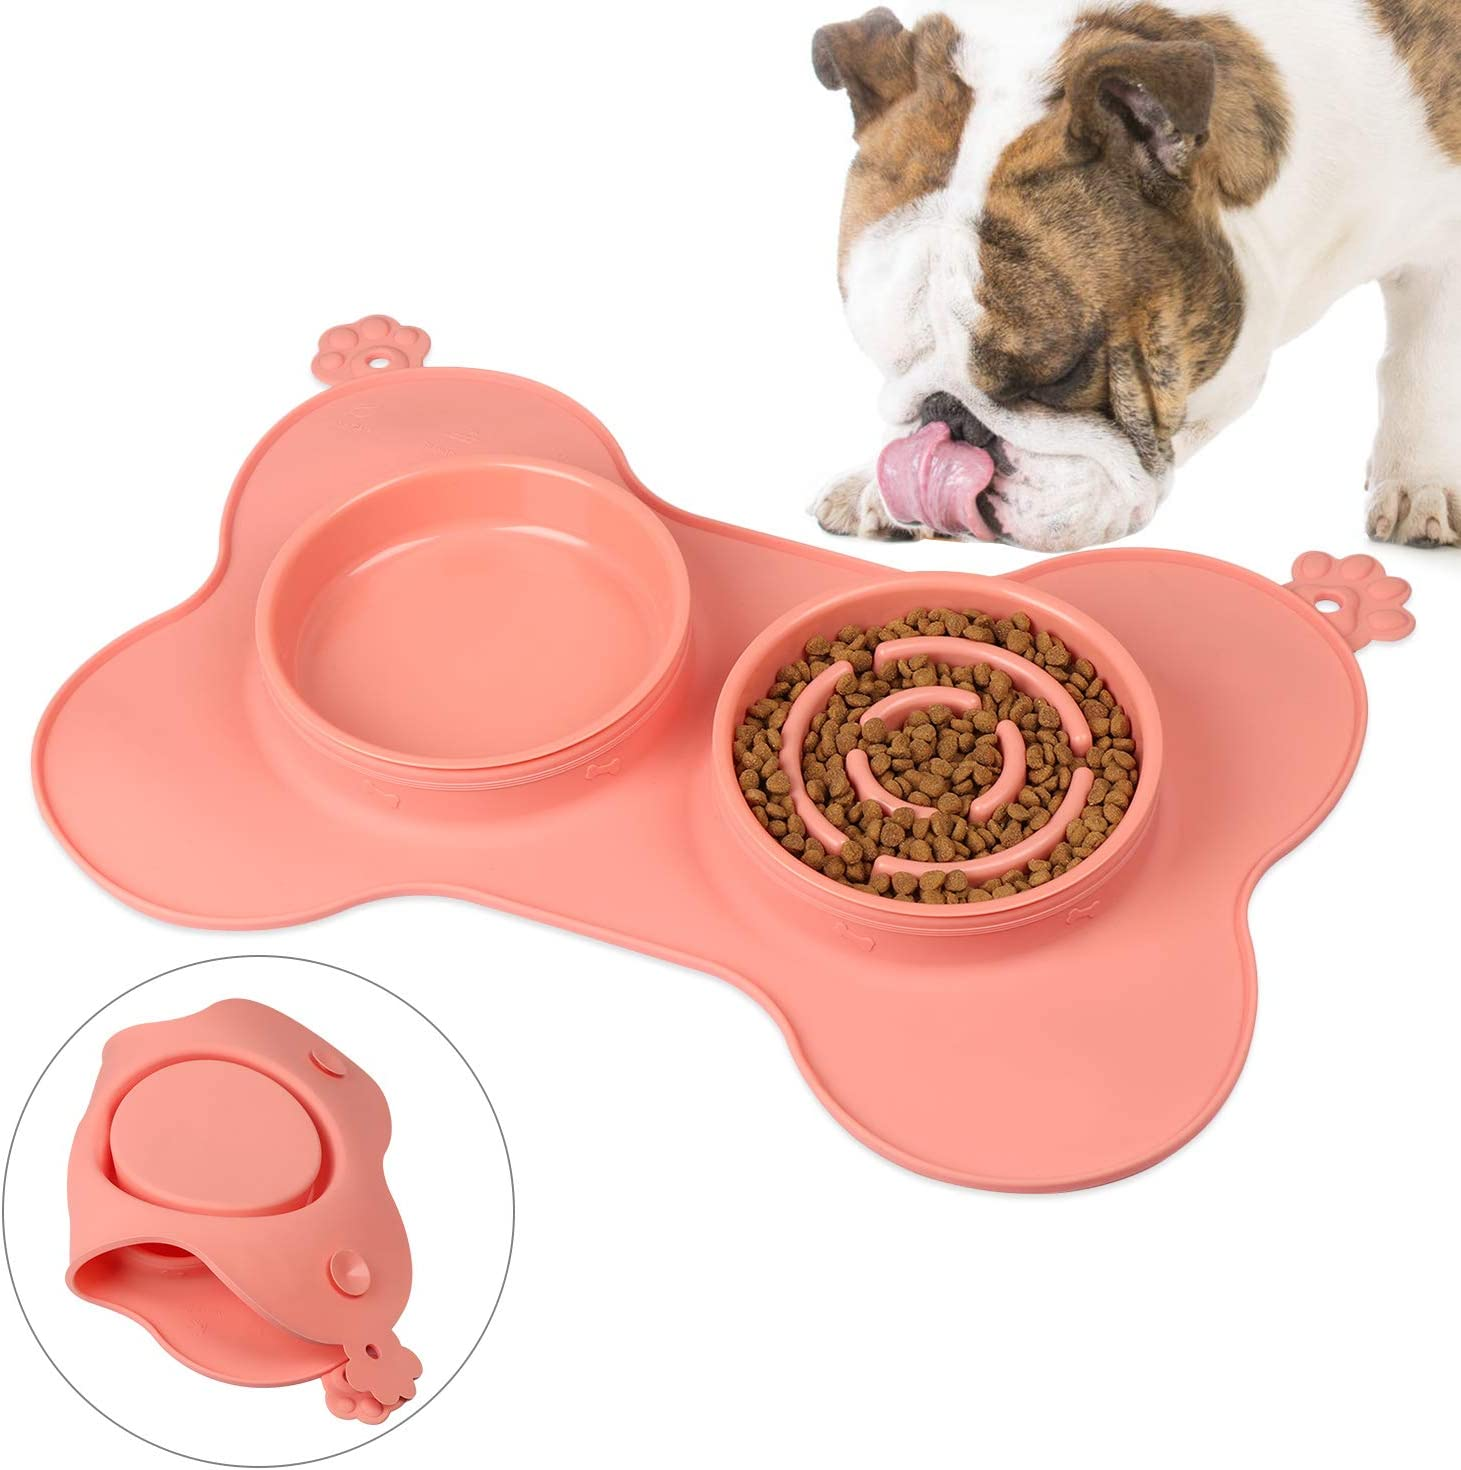 gootrades Foldable 2 Cups Slow Feeder Dog Bowl 3 in 1 ,to Slow Down Eating for Large Small Dogs, with No-Spill Non-Skid Silicone Mat Stainless Steel Water Bowl (Pink)